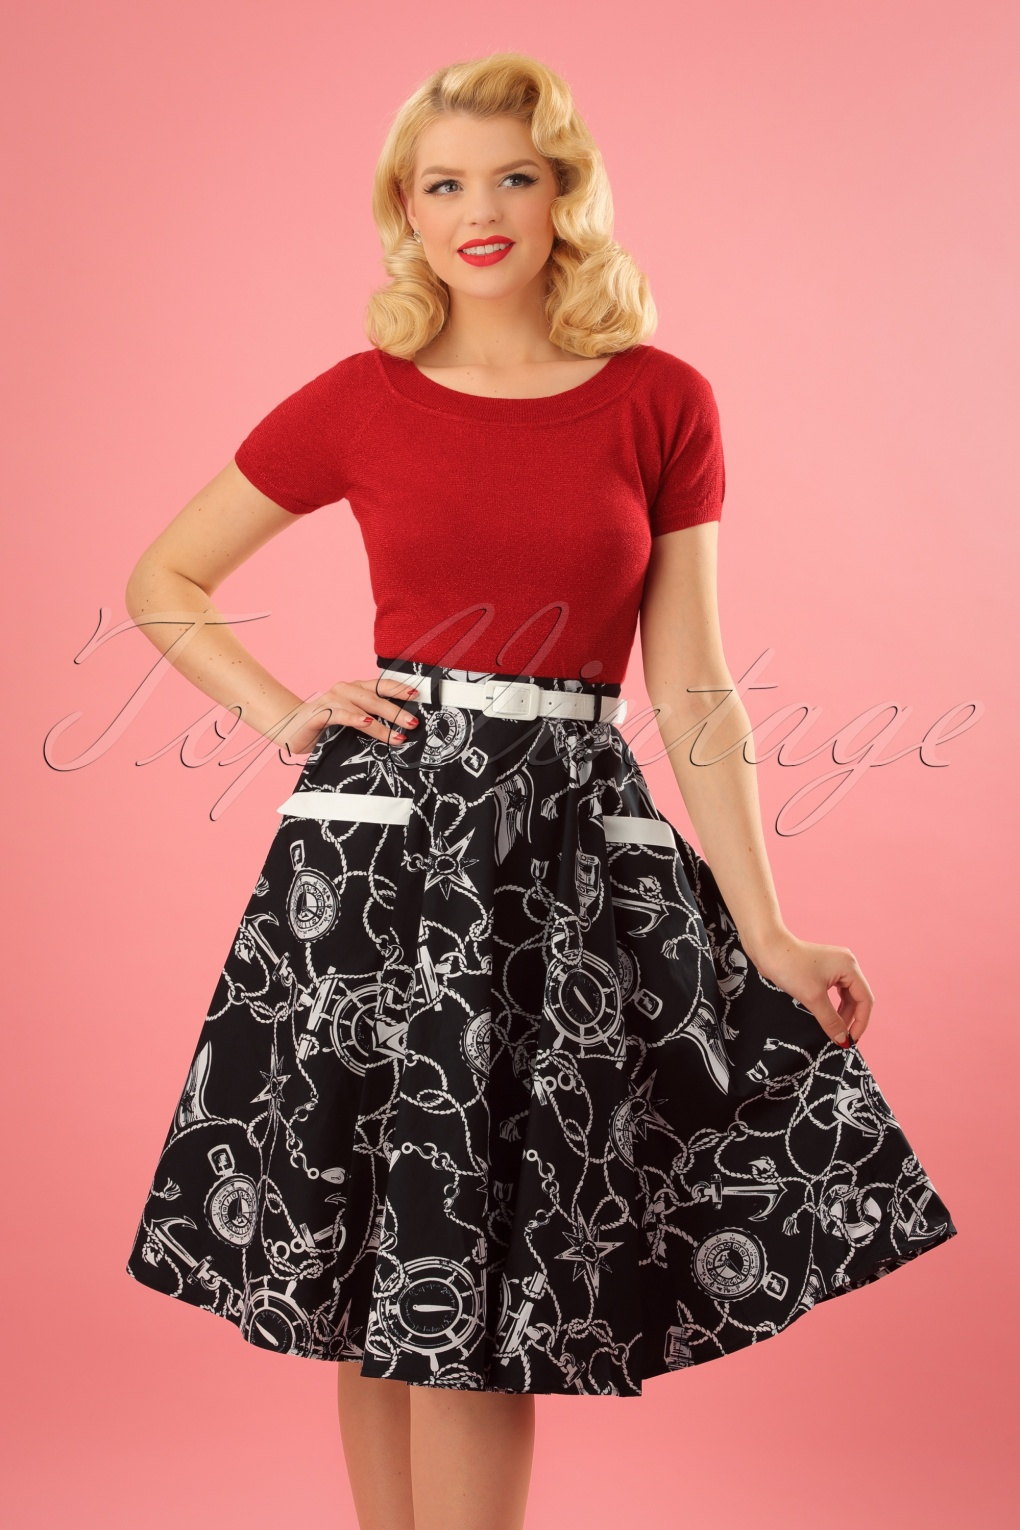 1930s Jewelry Styles and Trends 50s Mistral Swing Skirt in Black and White £35.00 AT vintagedancer.com